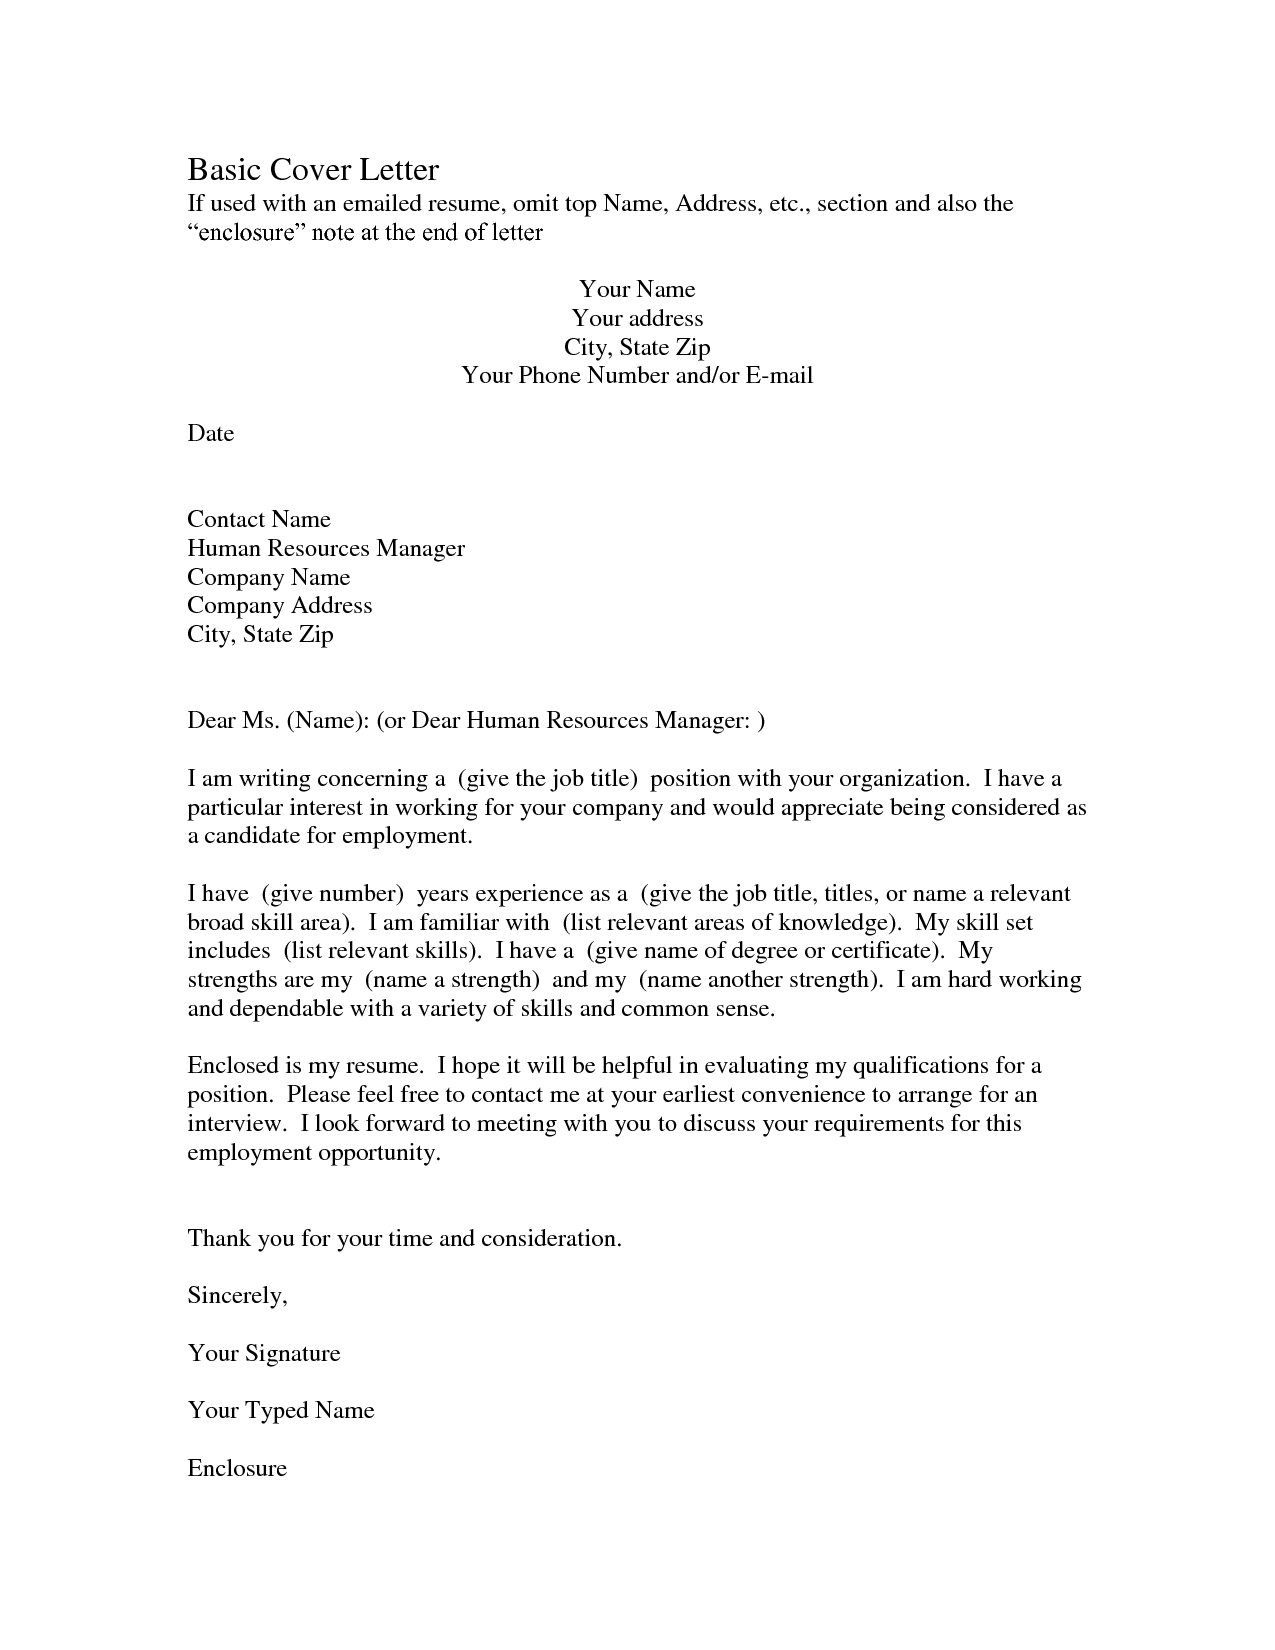 covering letter example simple cover letter examplesimple cover letter application letter sample - A Well Written Cover Letter